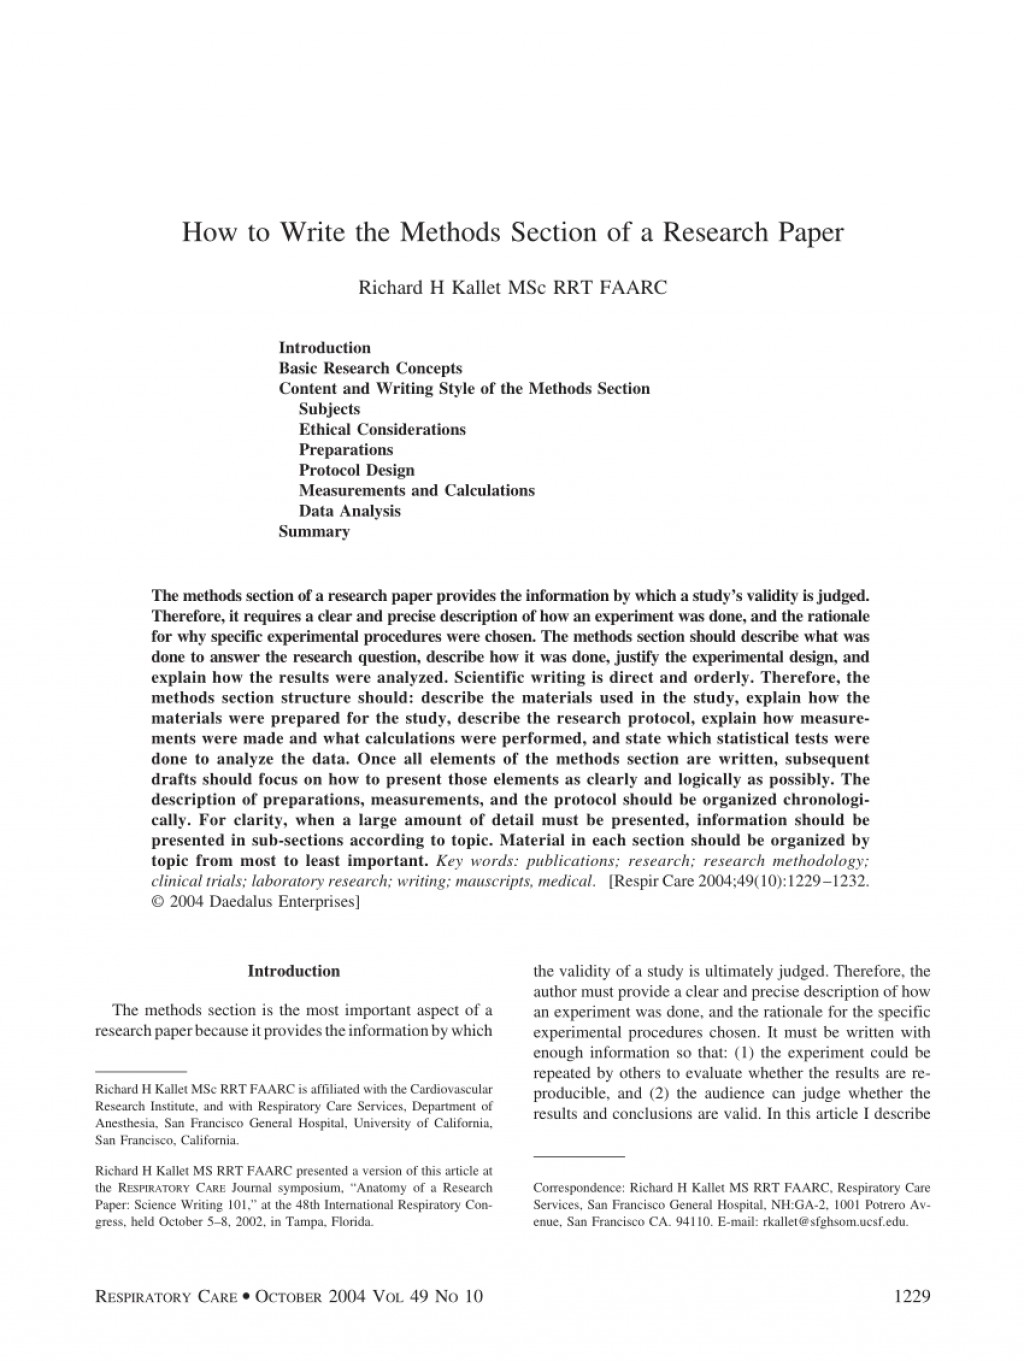 001 How To Write Research Paper Methods Section Phenomenal A The Of Wallet Quantitative Large